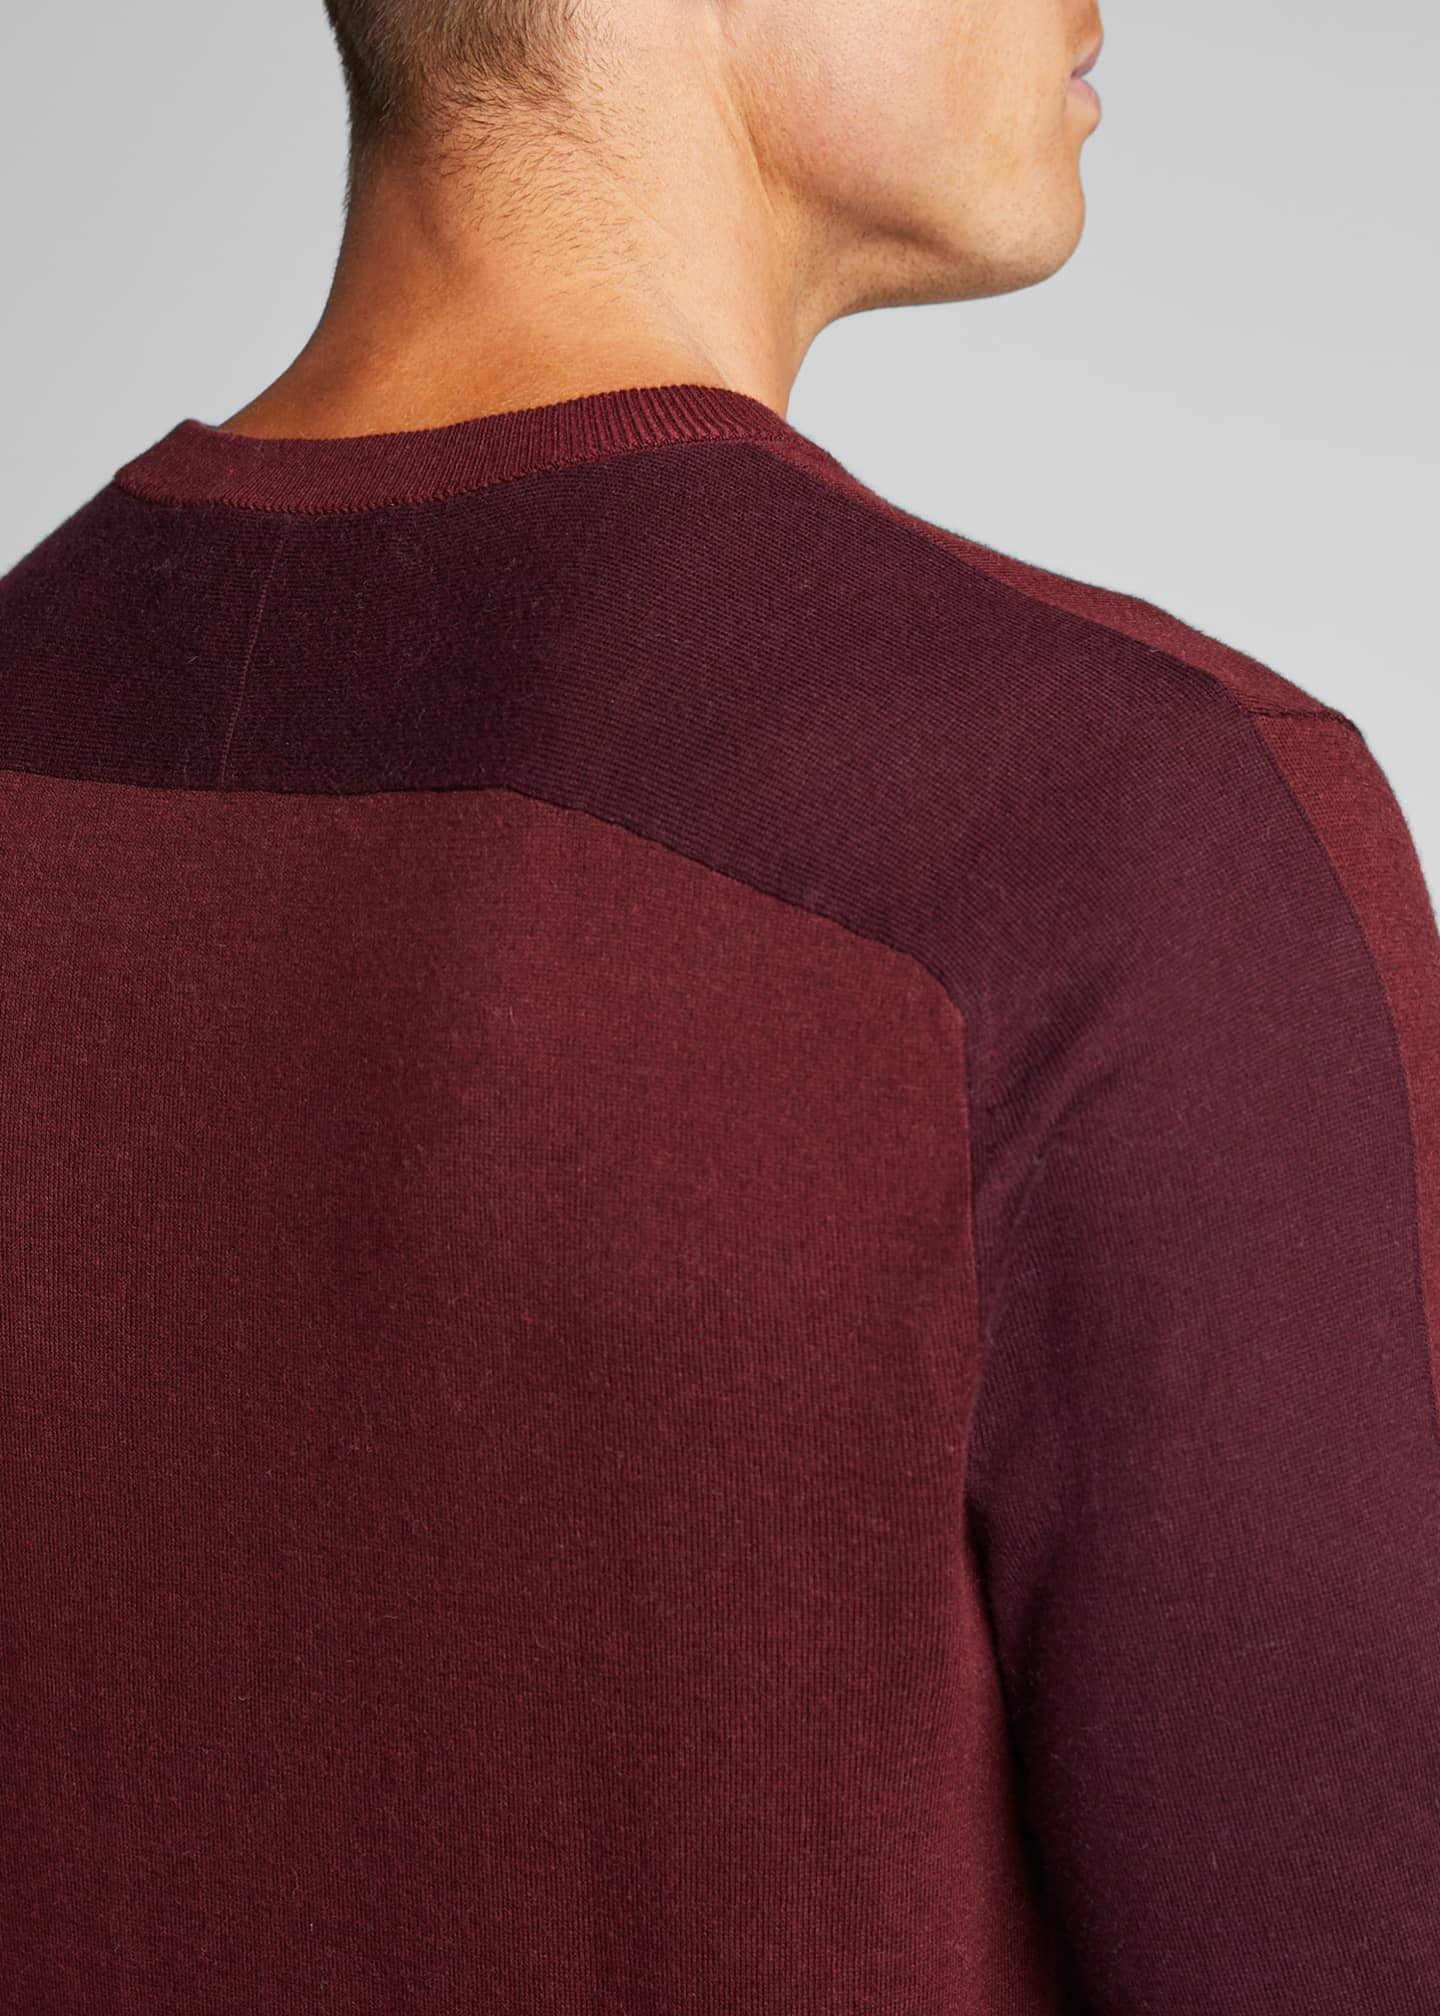 Image 4 of 5: Men's Barron Cotton-Silk Colorblock Sweater